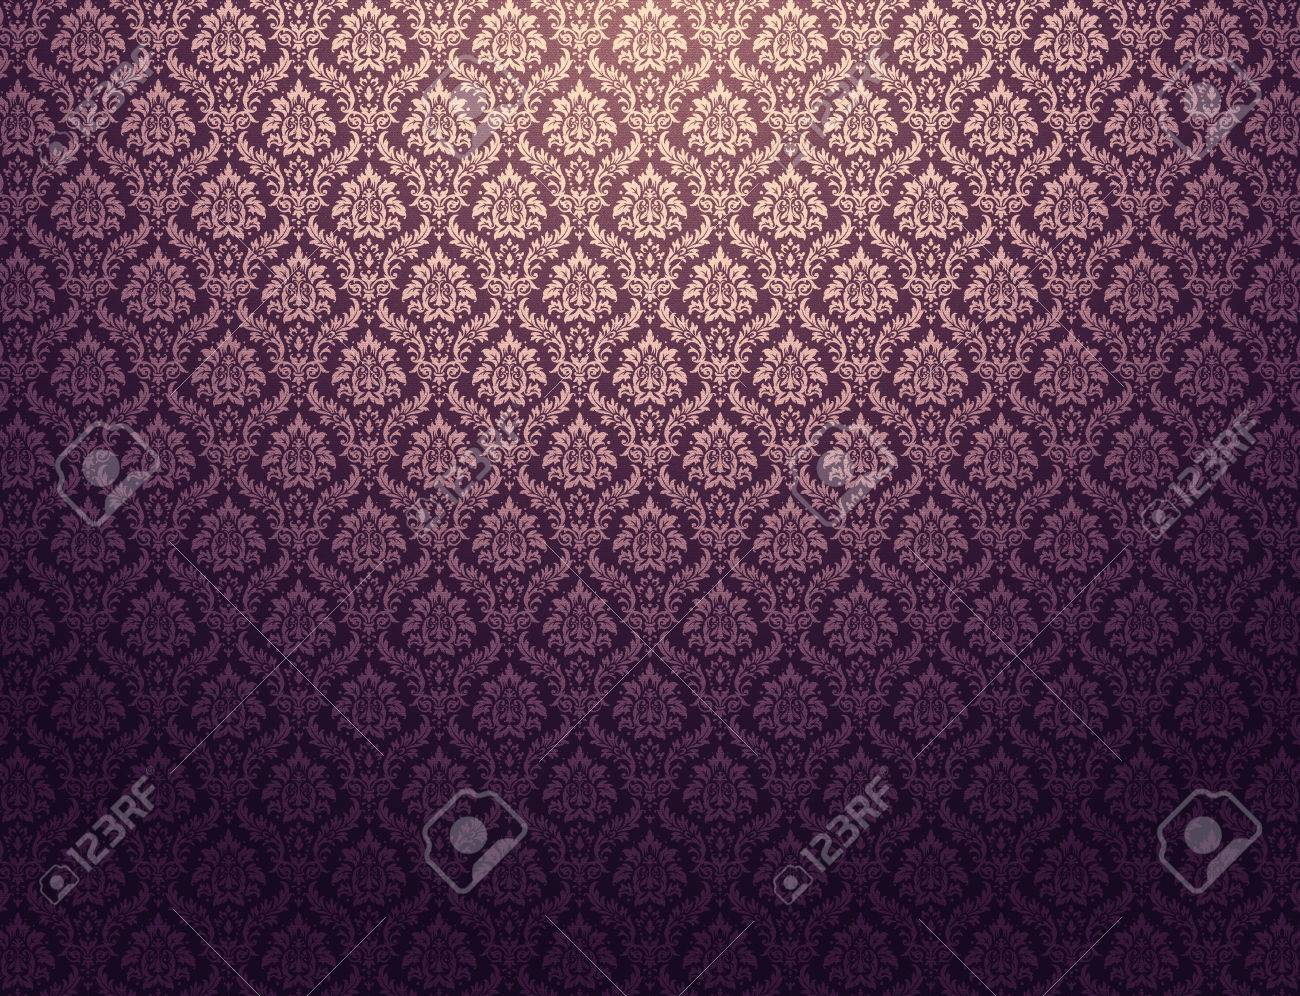 Purple Damask Wallpaper With Golden Floral Patterns Stock Photo